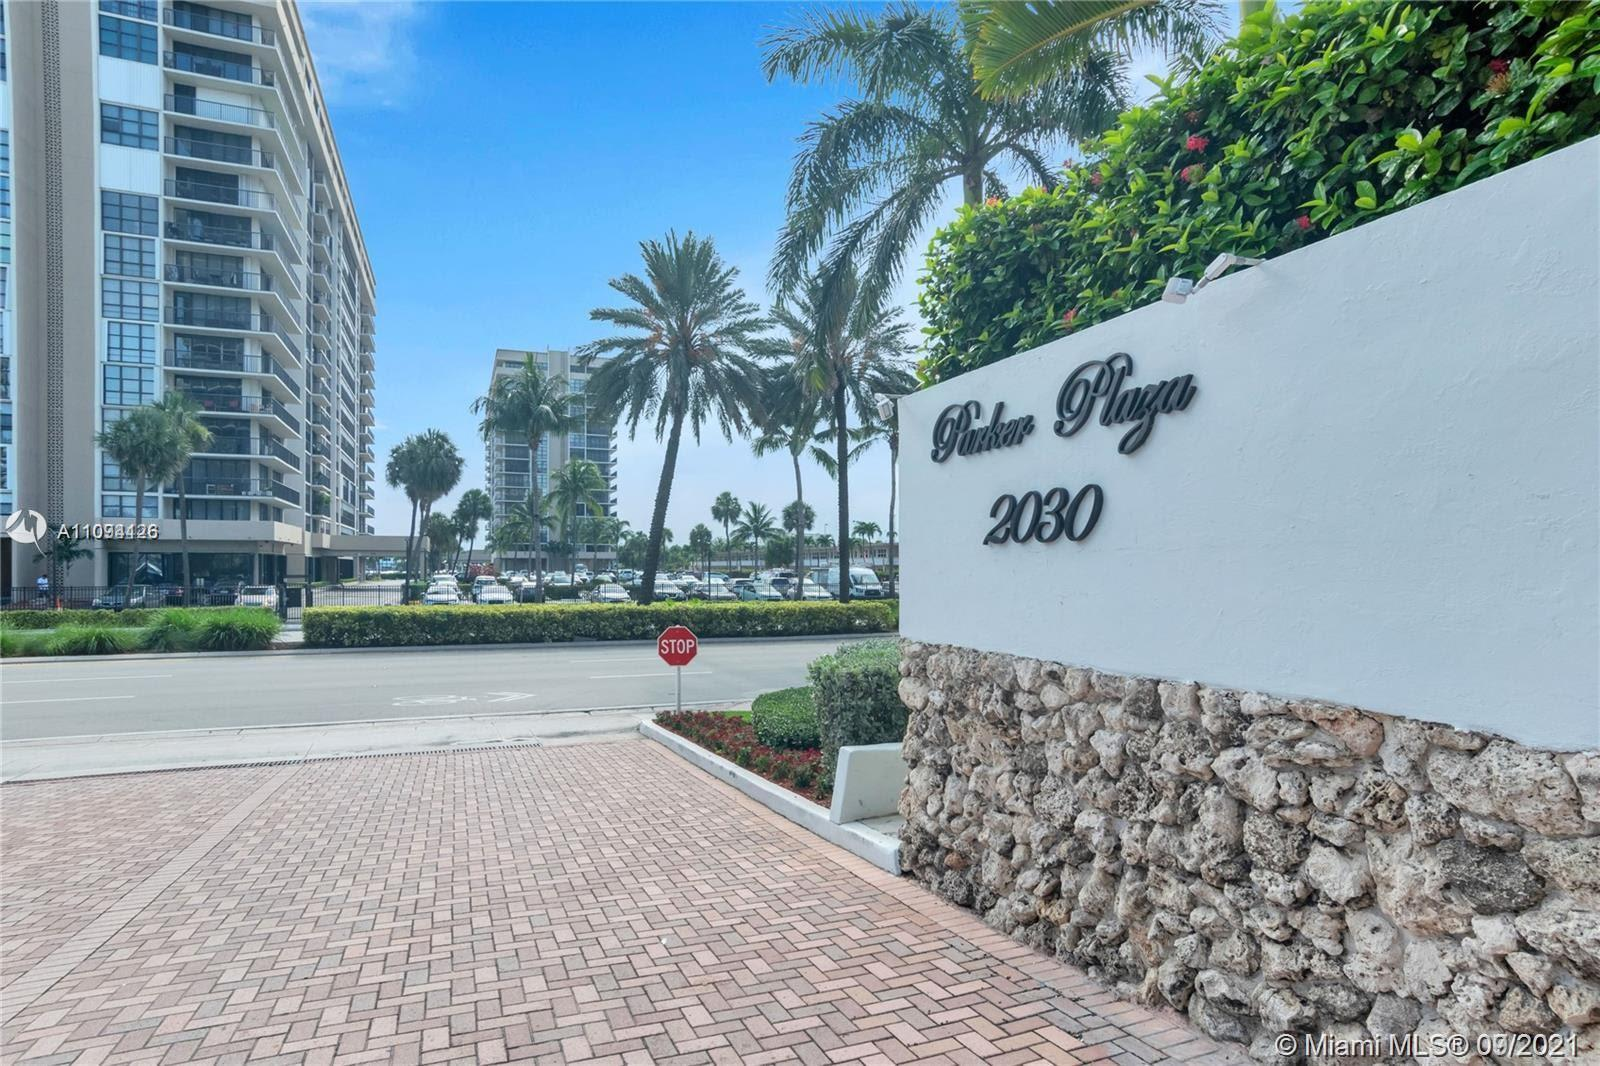 SPACIOUS 2/2, UPGRADED UNIT IN A LUXURIOUS OCEANFRONT CONDO. LARGE MASTER BEDROOM WITH 2 WALKING CLO